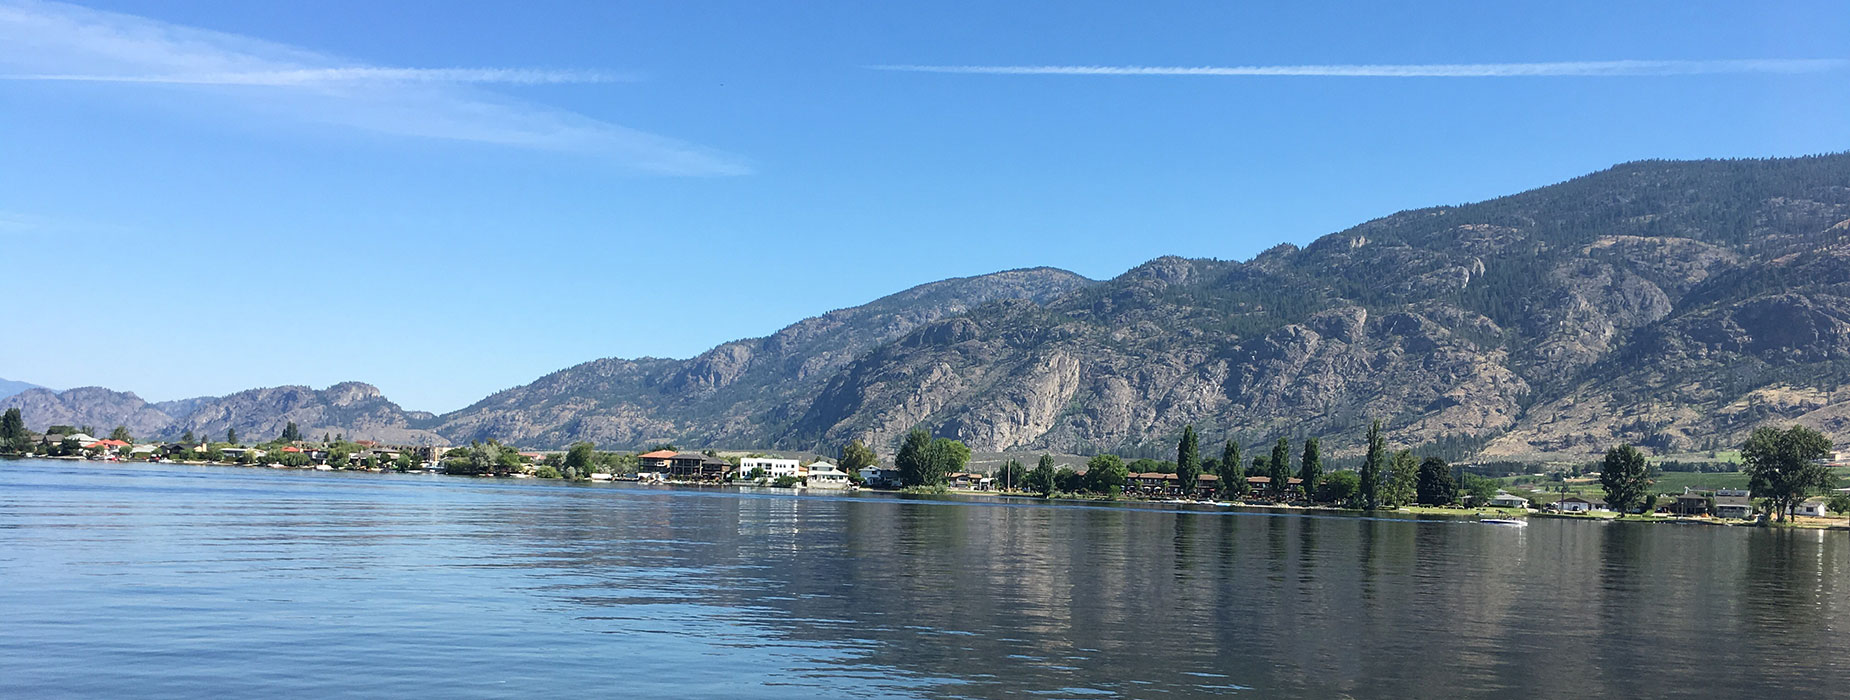 EasyGo Holidays offers a fabulous alternative to hotel living when you are visiting the Okanagan Valley.